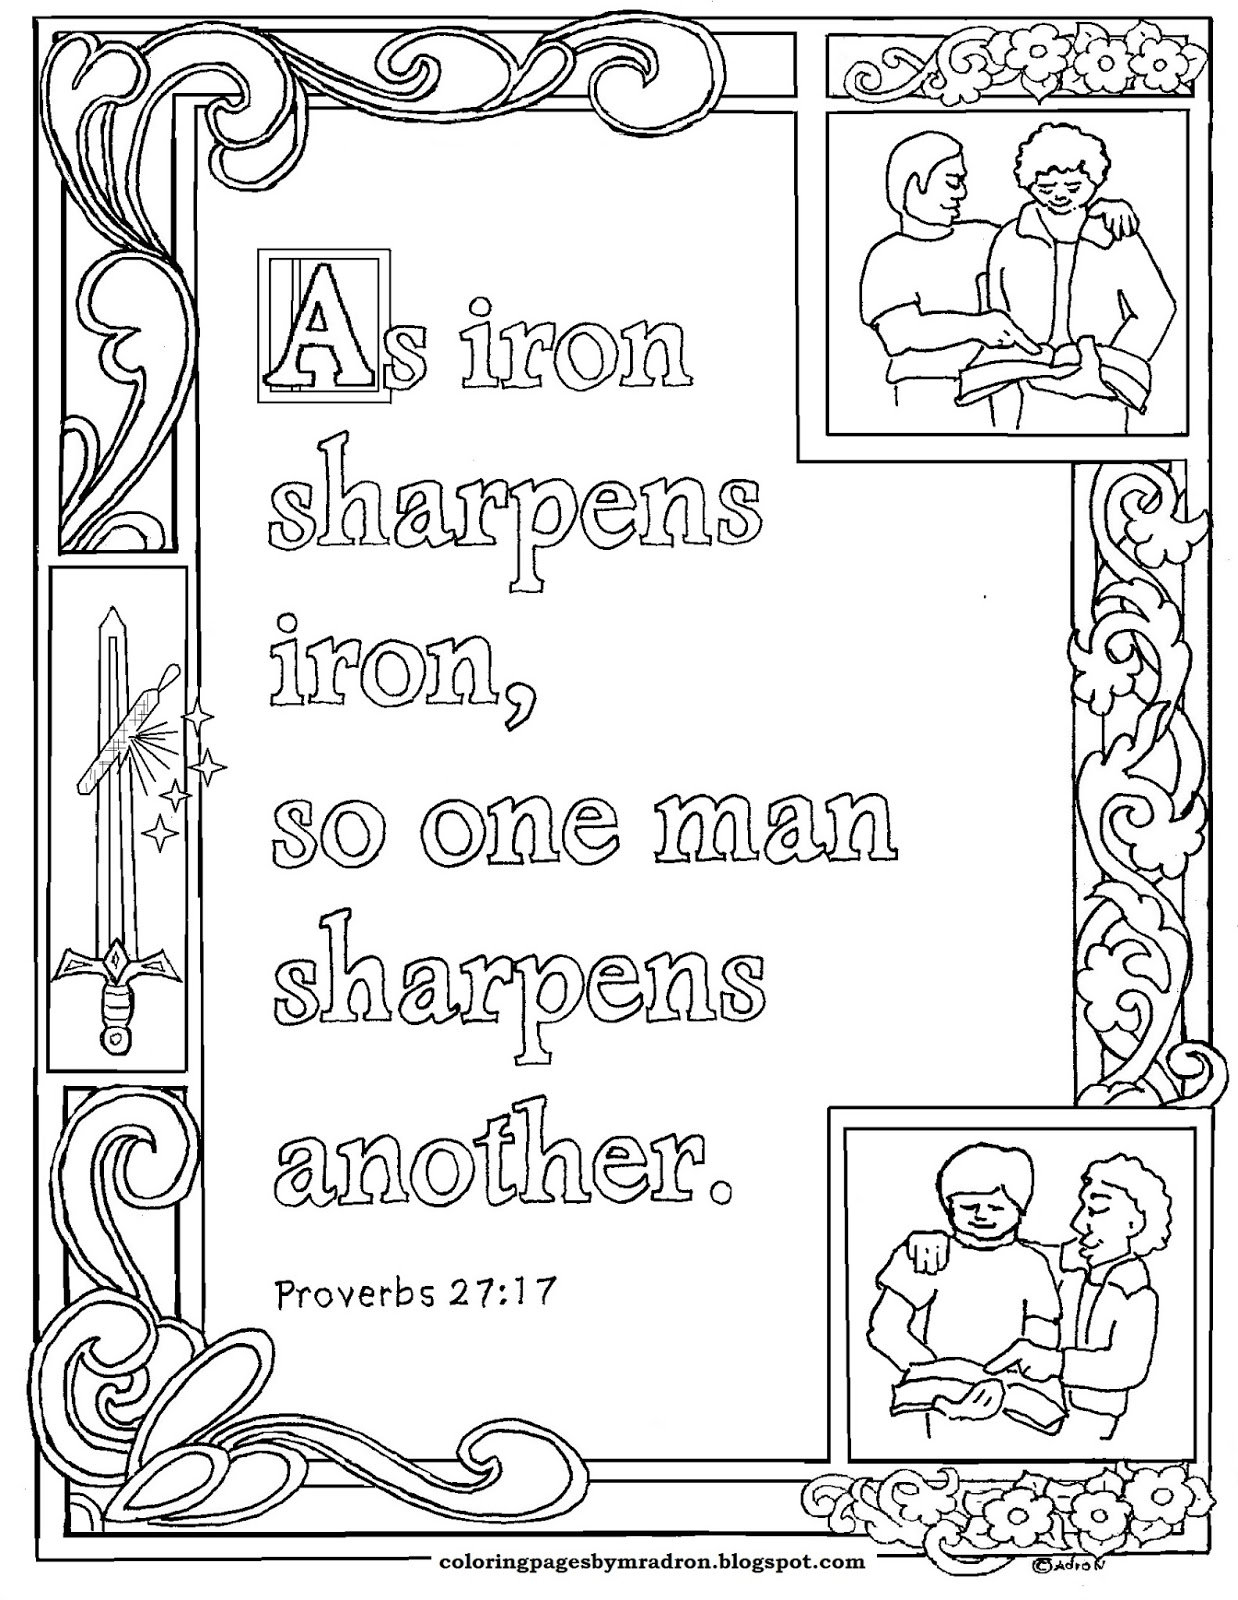 coloring pages proverbs - photo#14